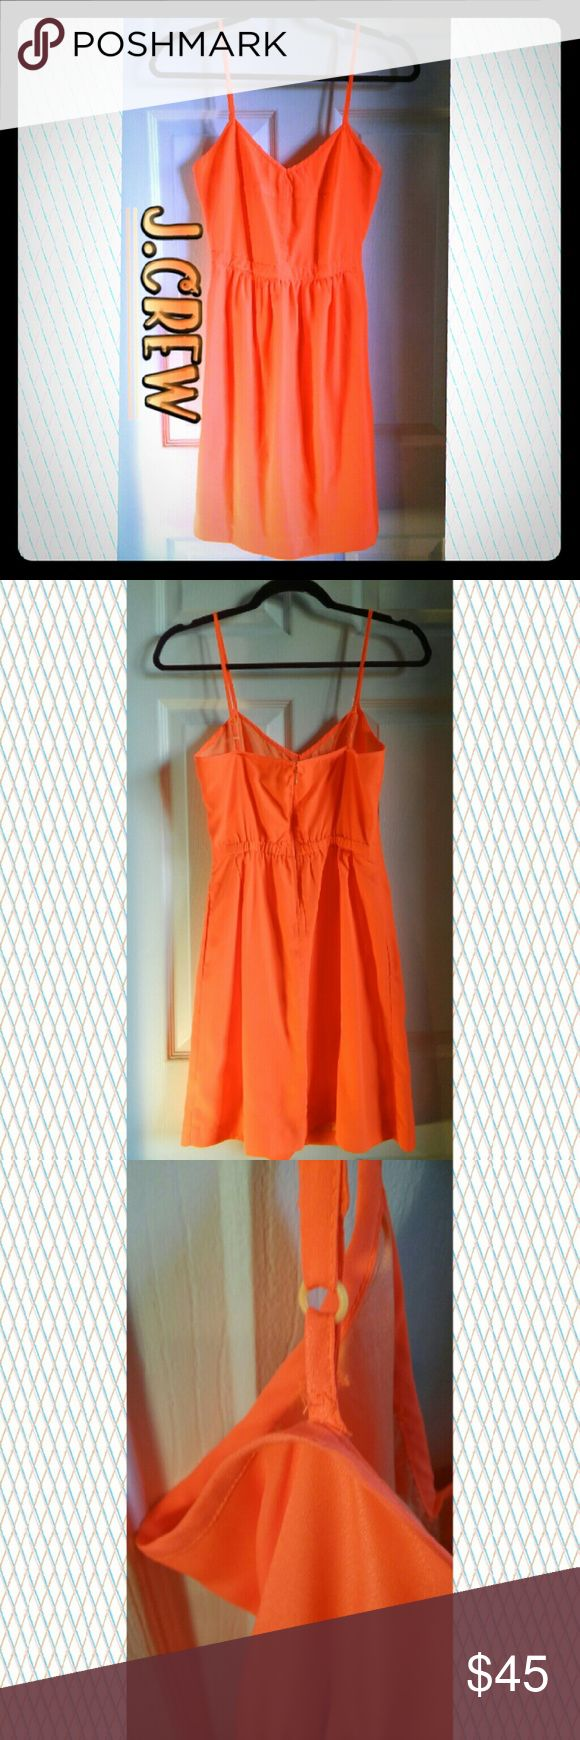 J. Crew Seaside Cami Dress (sz0) ~Fit-and-flare silhouette.  ~Falls above knee. ~Back zip. ~On-seam pockets. ~Lined. ~Import.  Color: Wildfire Pink Material: 100% polyester  Care: Dry Clean Style# 43785  ?Online Exclusive?   ??Stitching on one strap is slightly ripped. Shown in 3rd picture.??  Any questions please feel free to ask ? J. Crew Dresses Mini